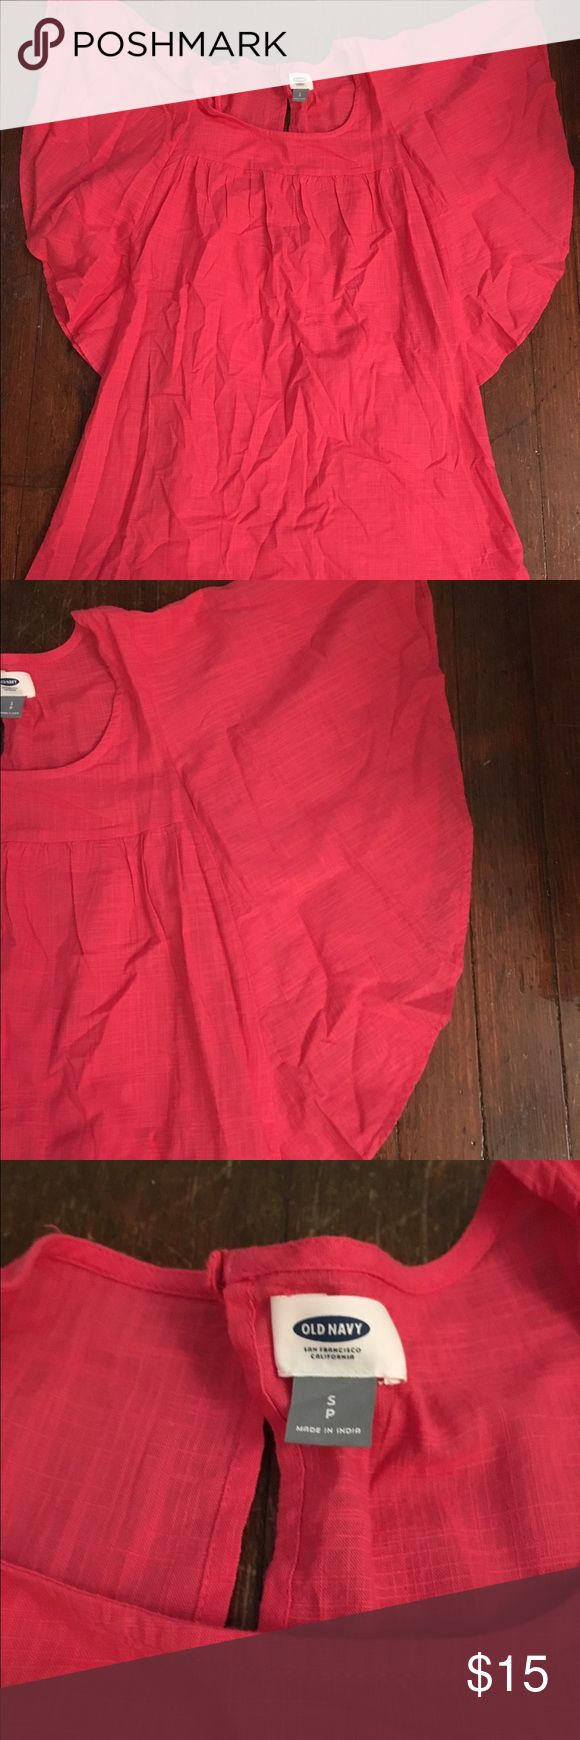 Pink sun dress Very light weight, cute, will steam or iron before sale Old Navy Dresses Midi